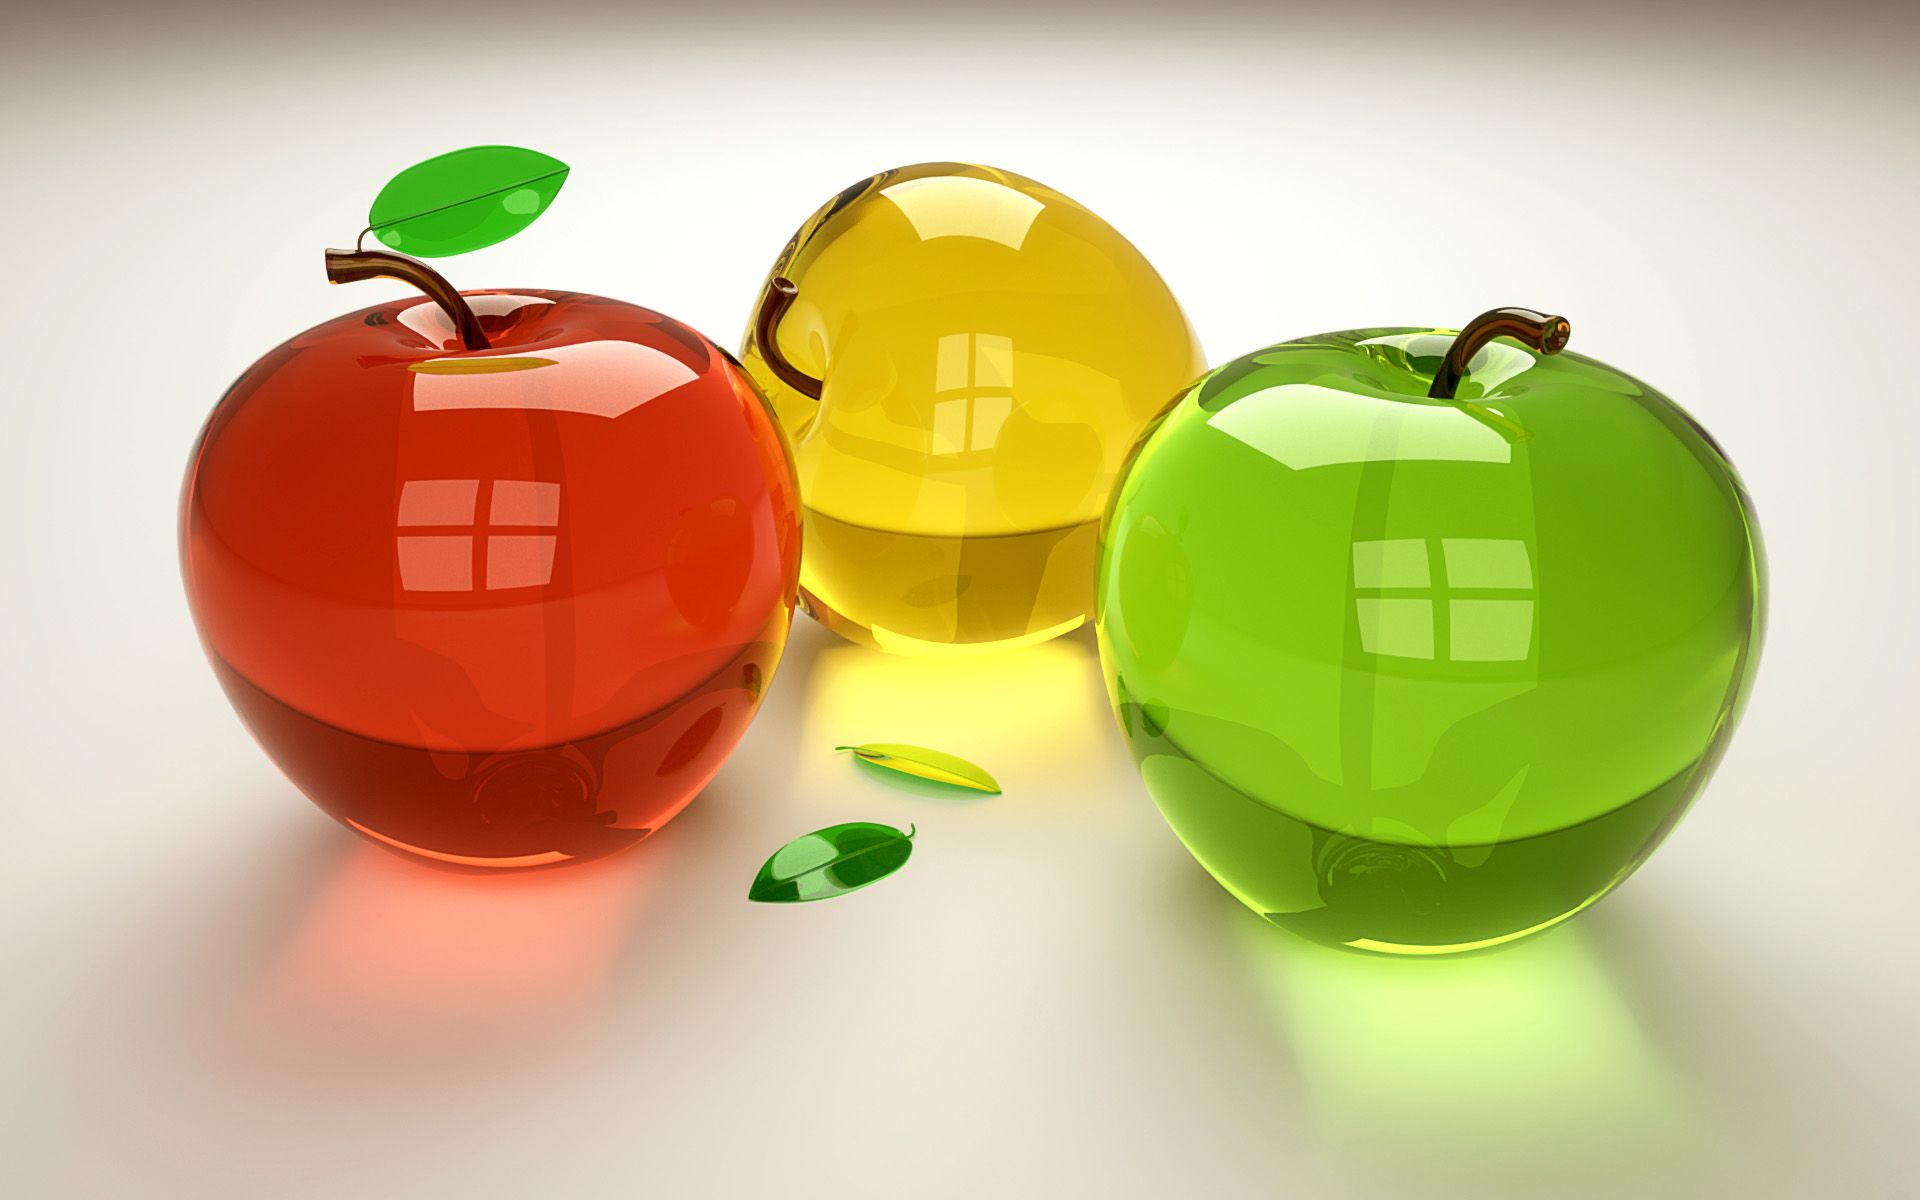 glass apples - wallpapers | wallpdb | 4536 | it fascinates me